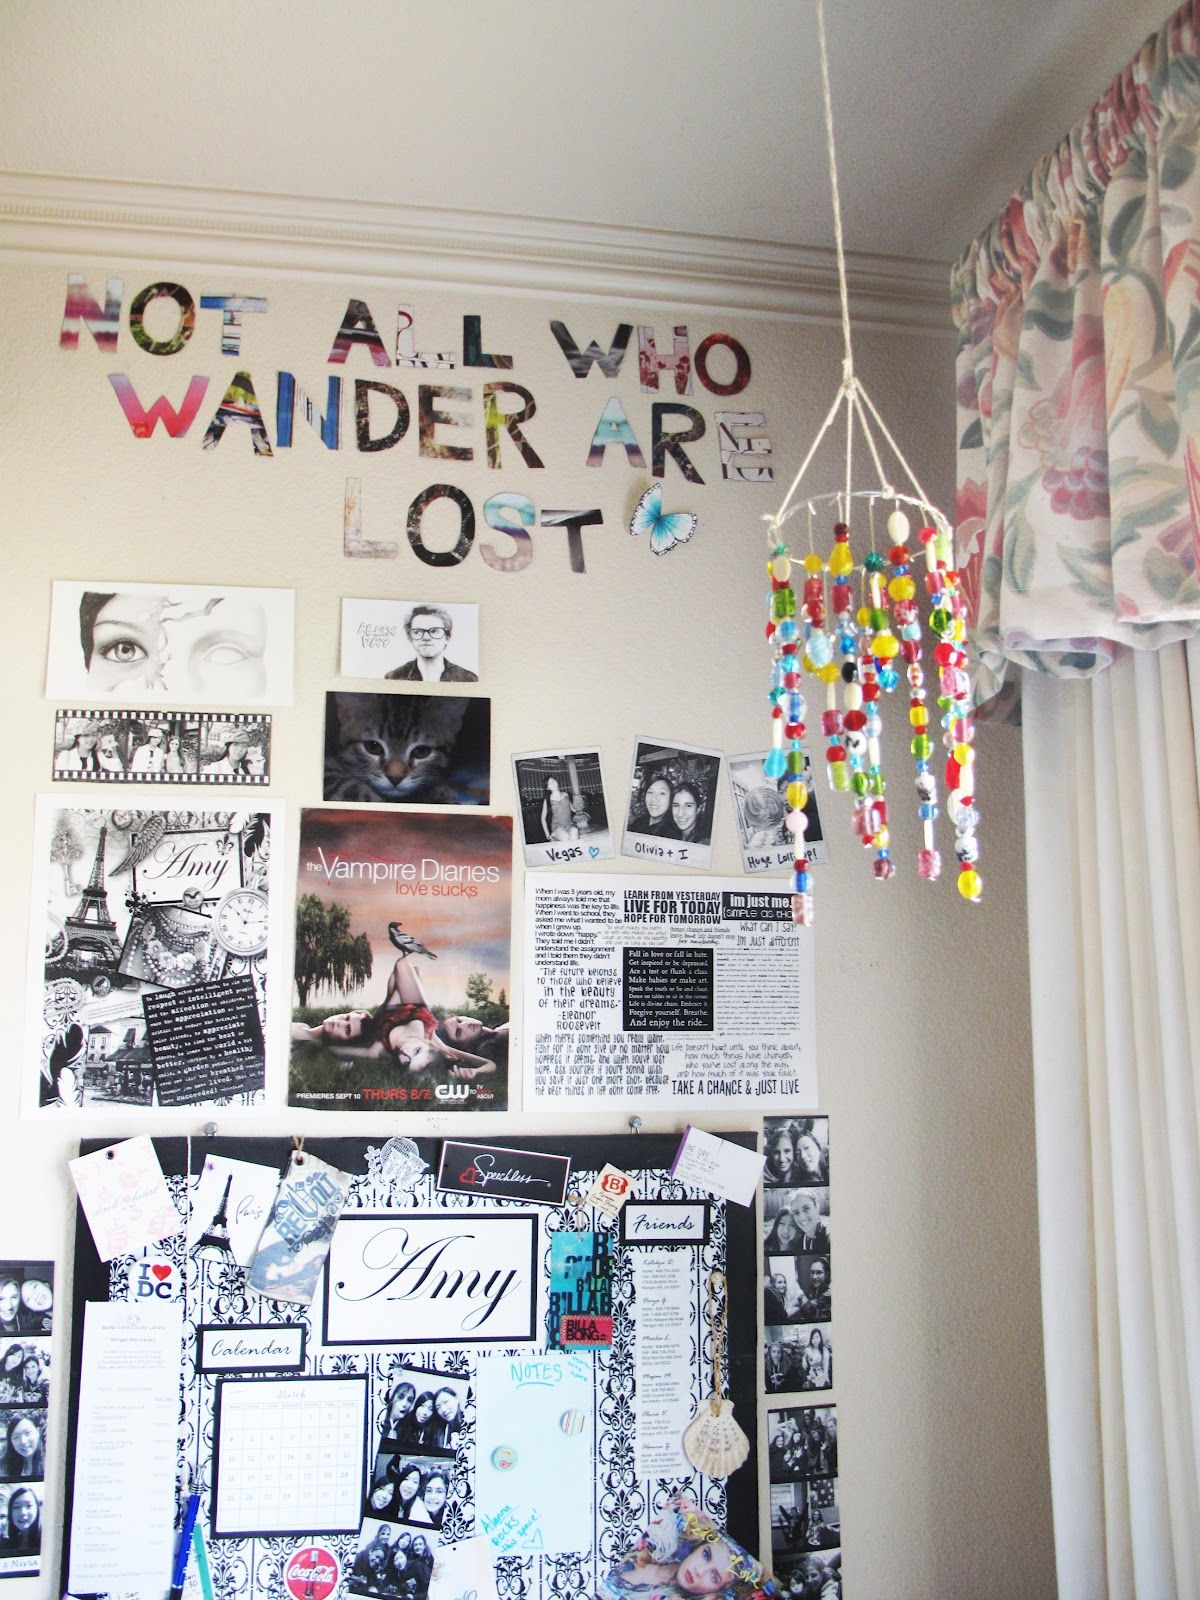 Room decoration ideas for college girls need help with diy home decor check out these top tips  diy home